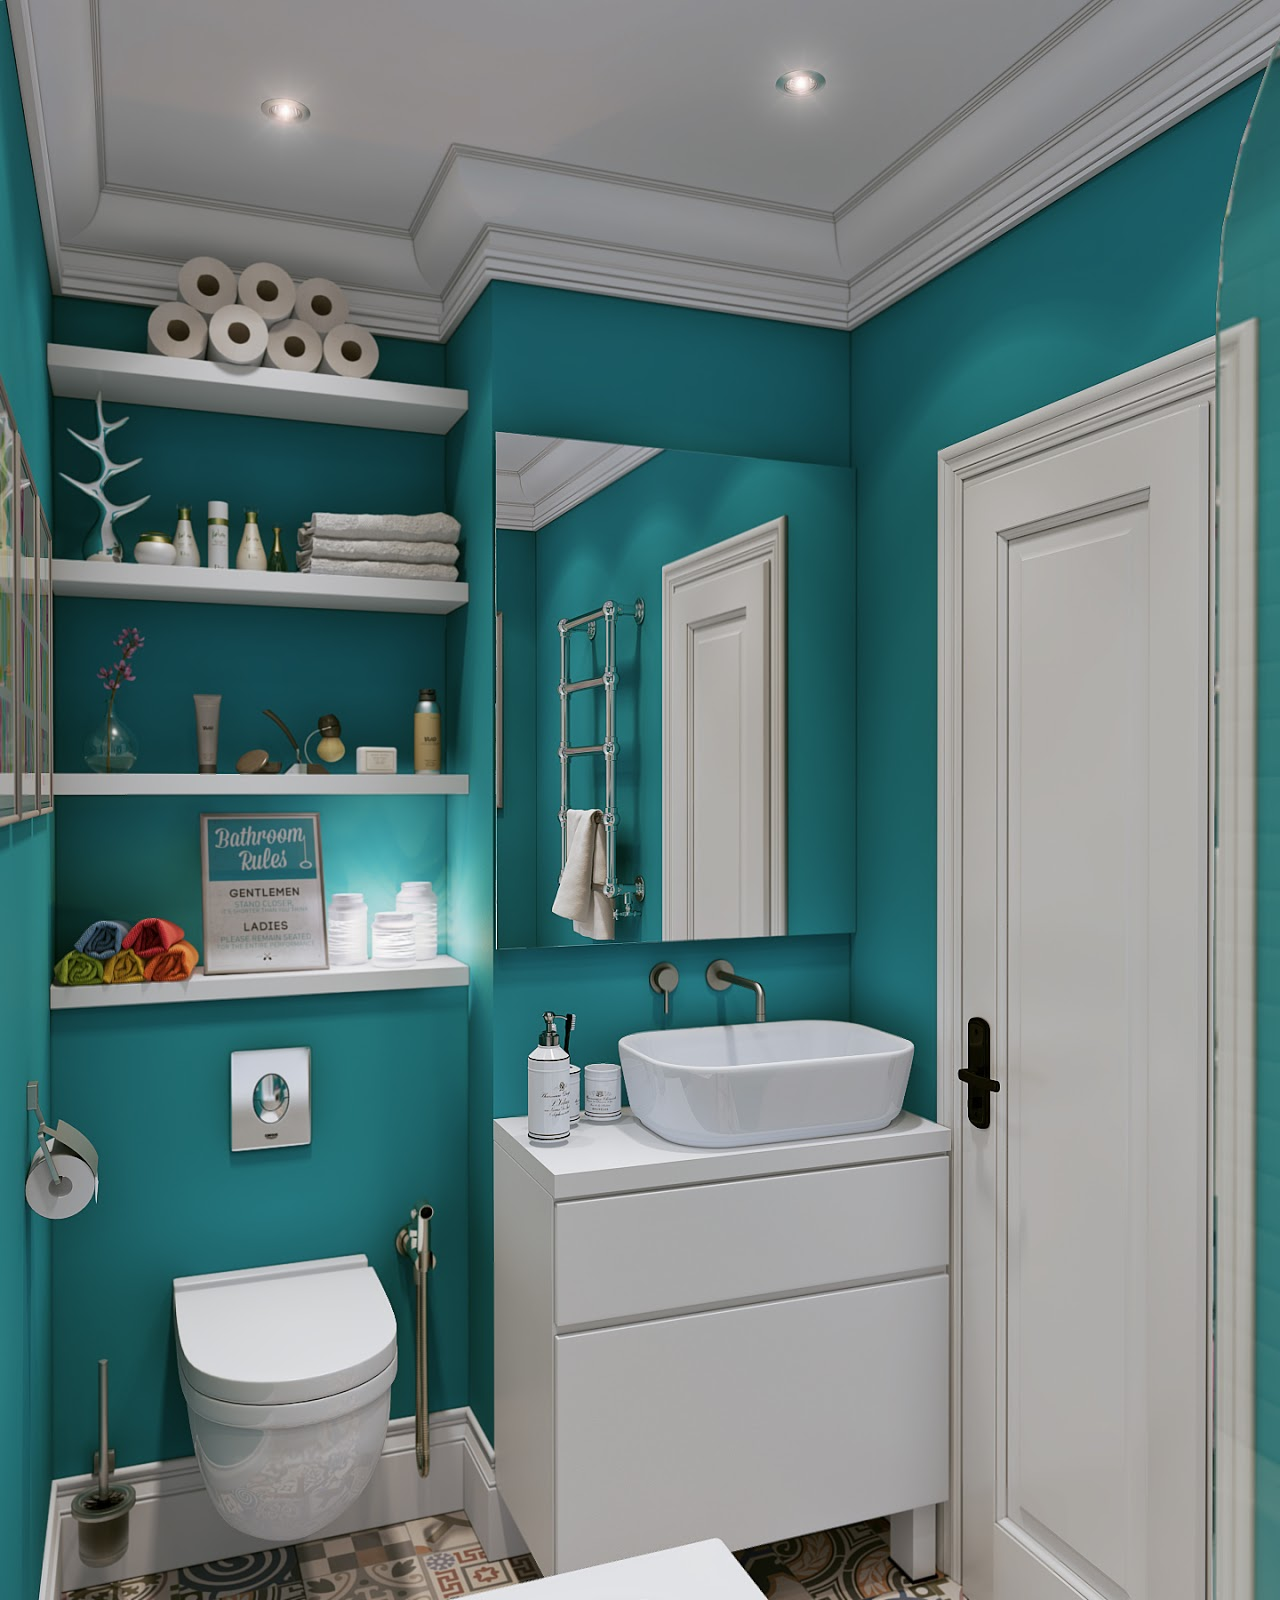 Small open plan home interiors for Teal and gray bathroom ideas